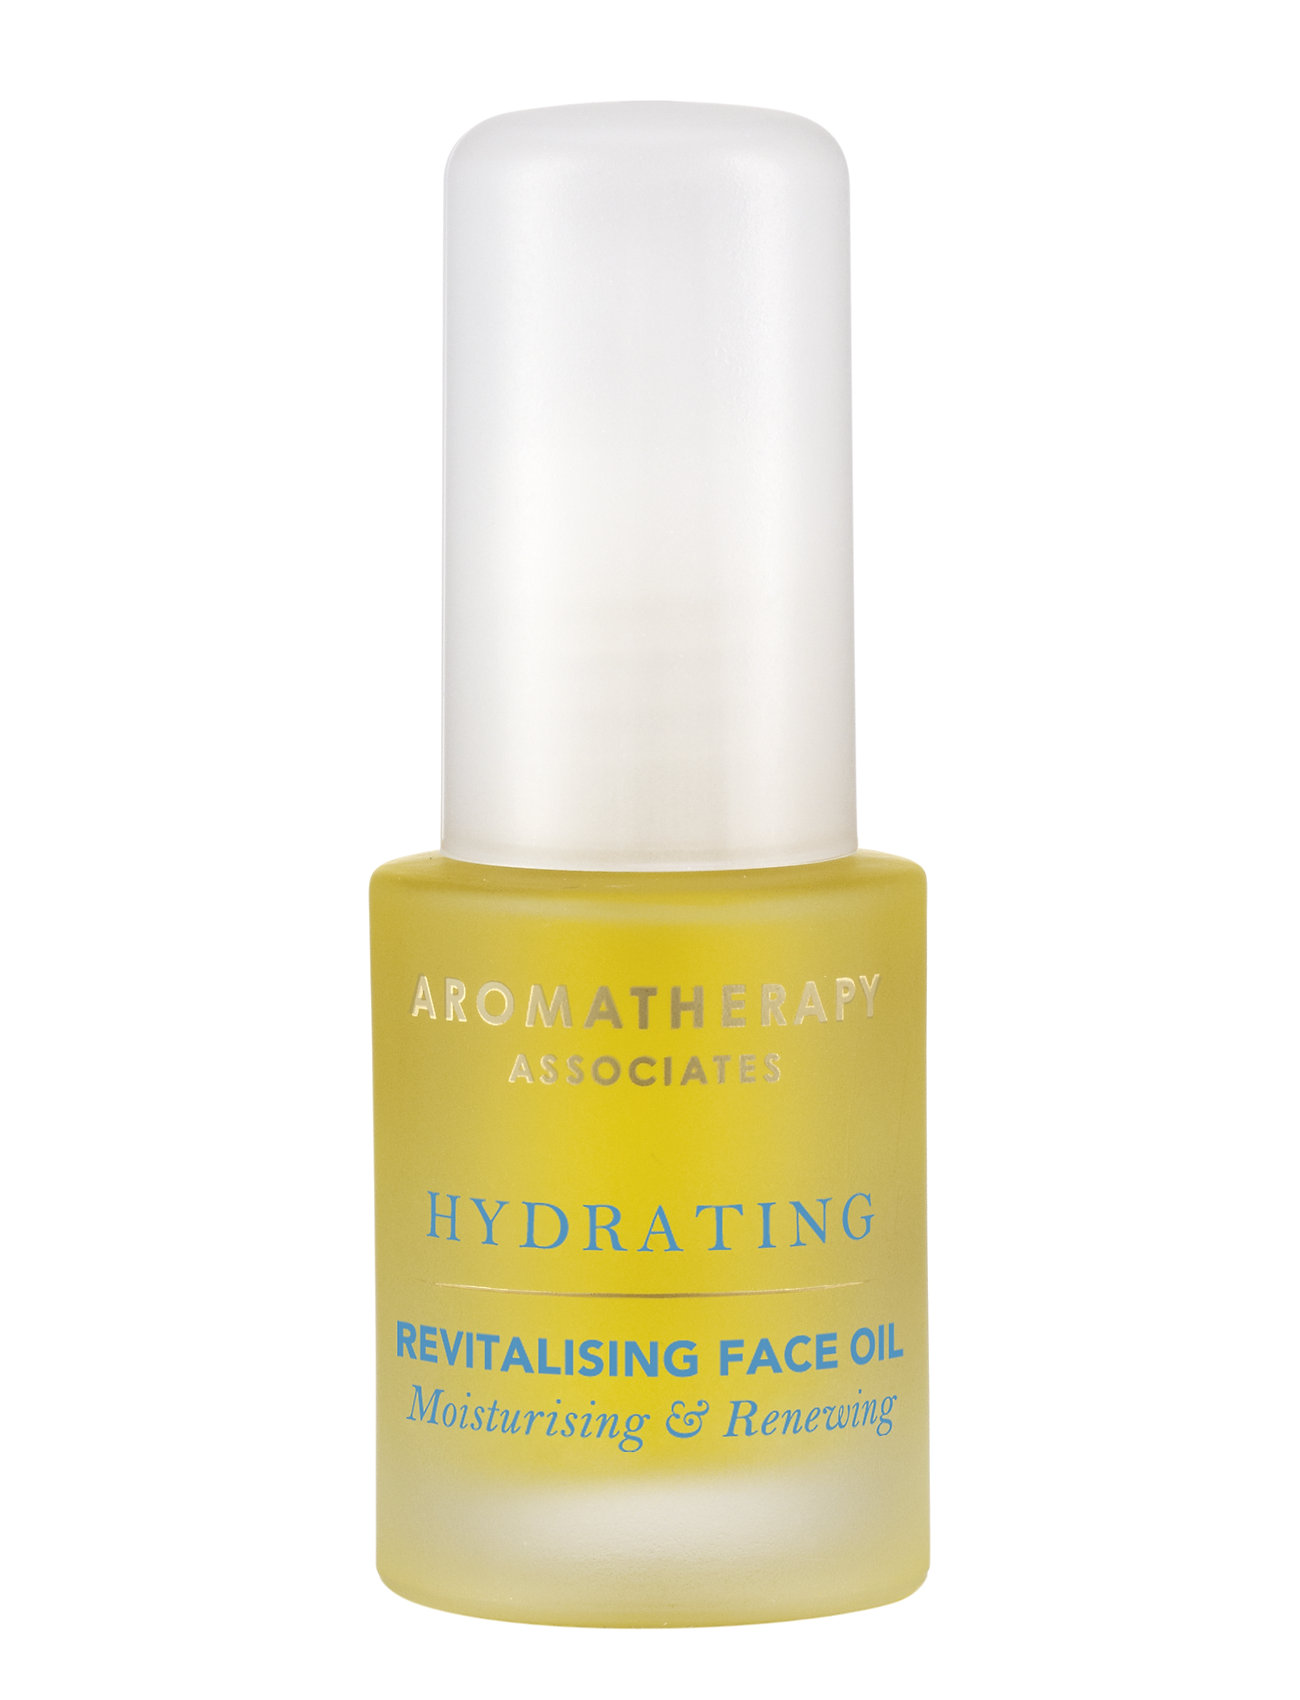 Image of Hydrating Revitalising Face Oil (3082978085)